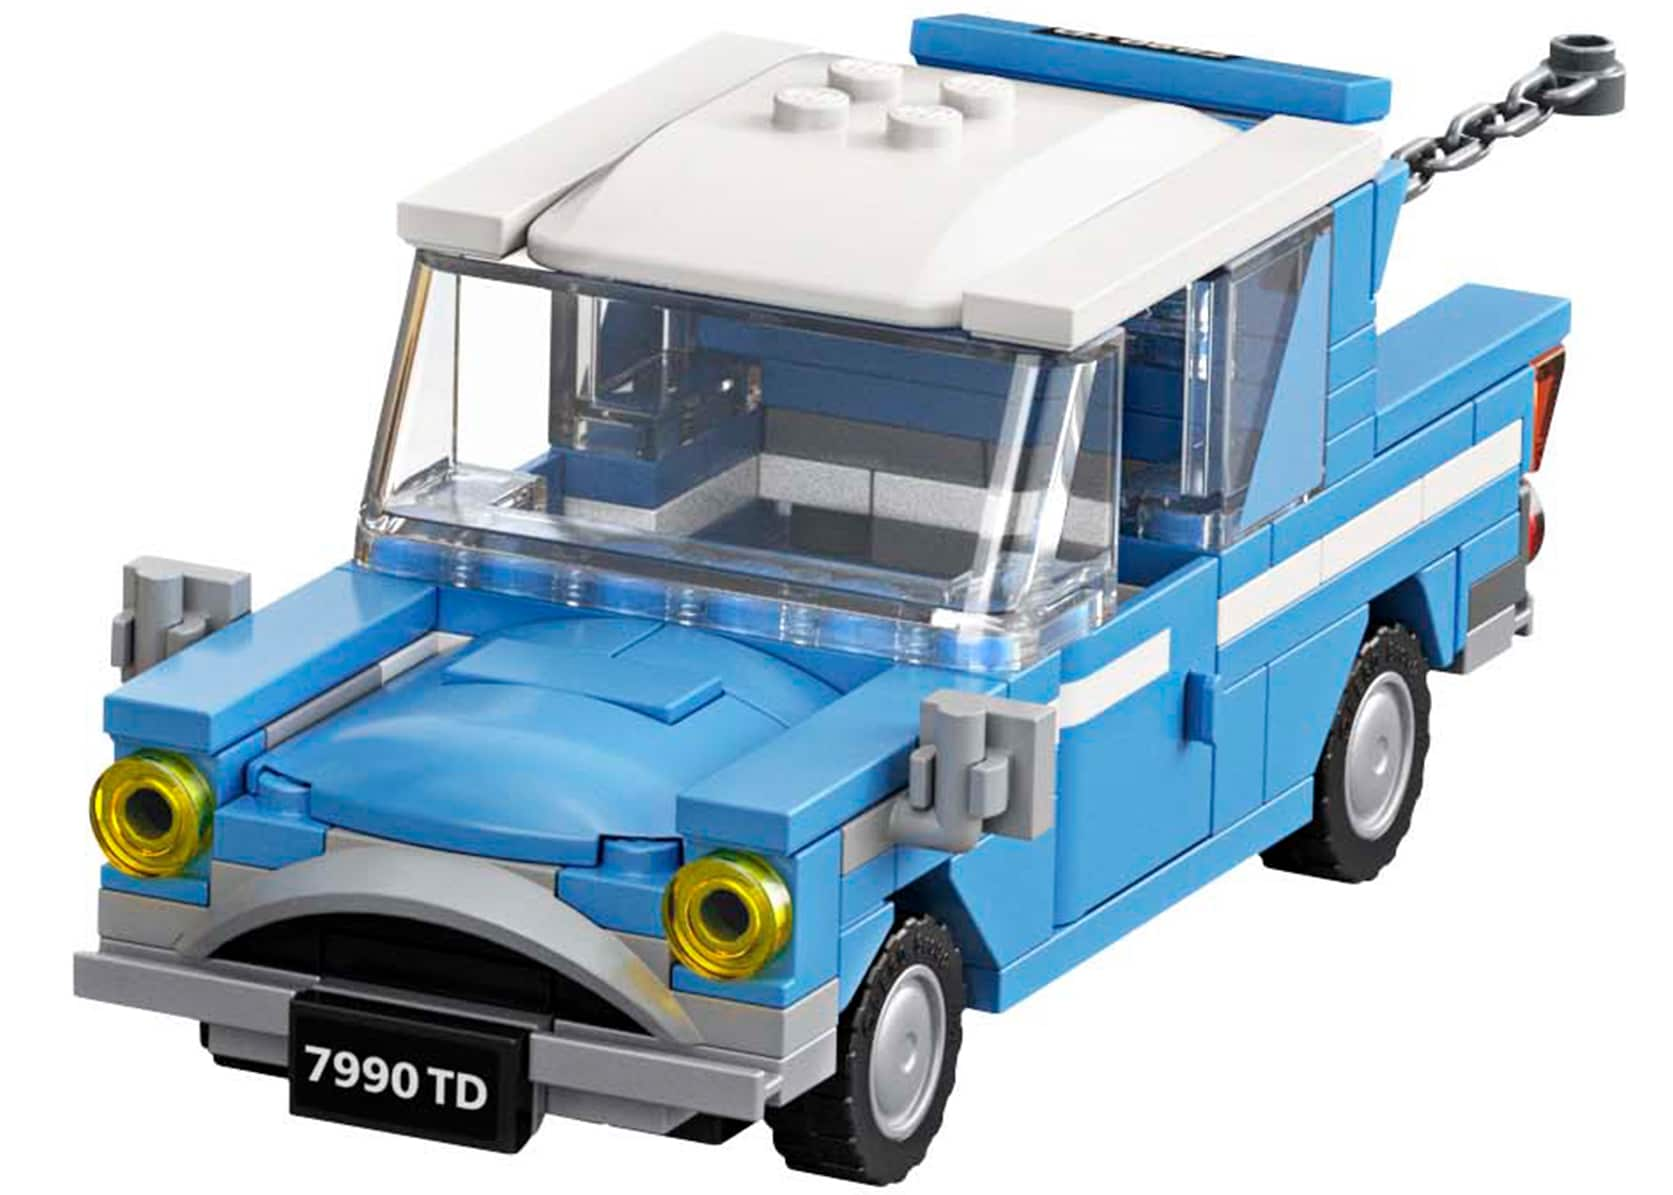 LEGO Harry Potter Ford Anglia (2020)